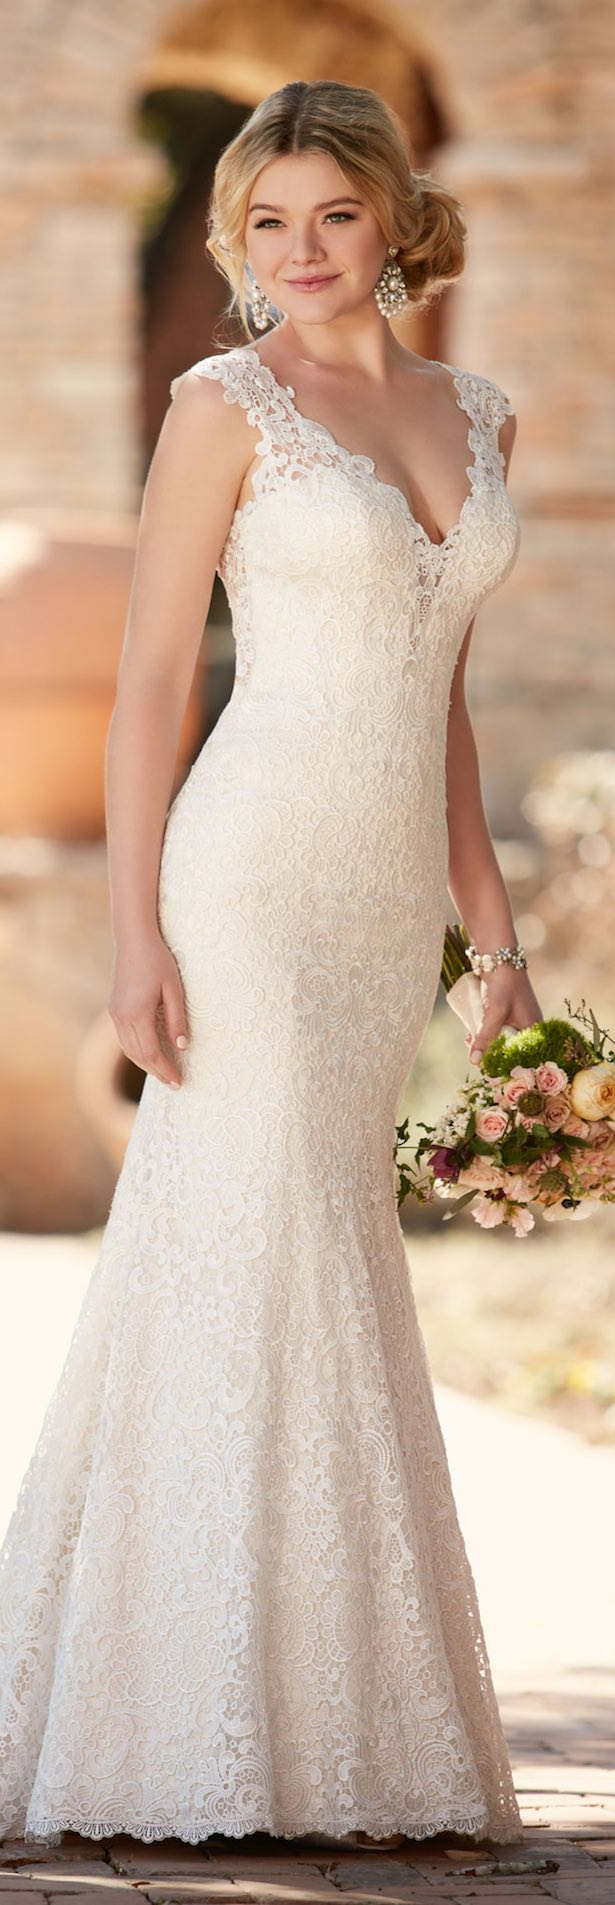 essense-of-australia-fall-2016-wedding-dress-96